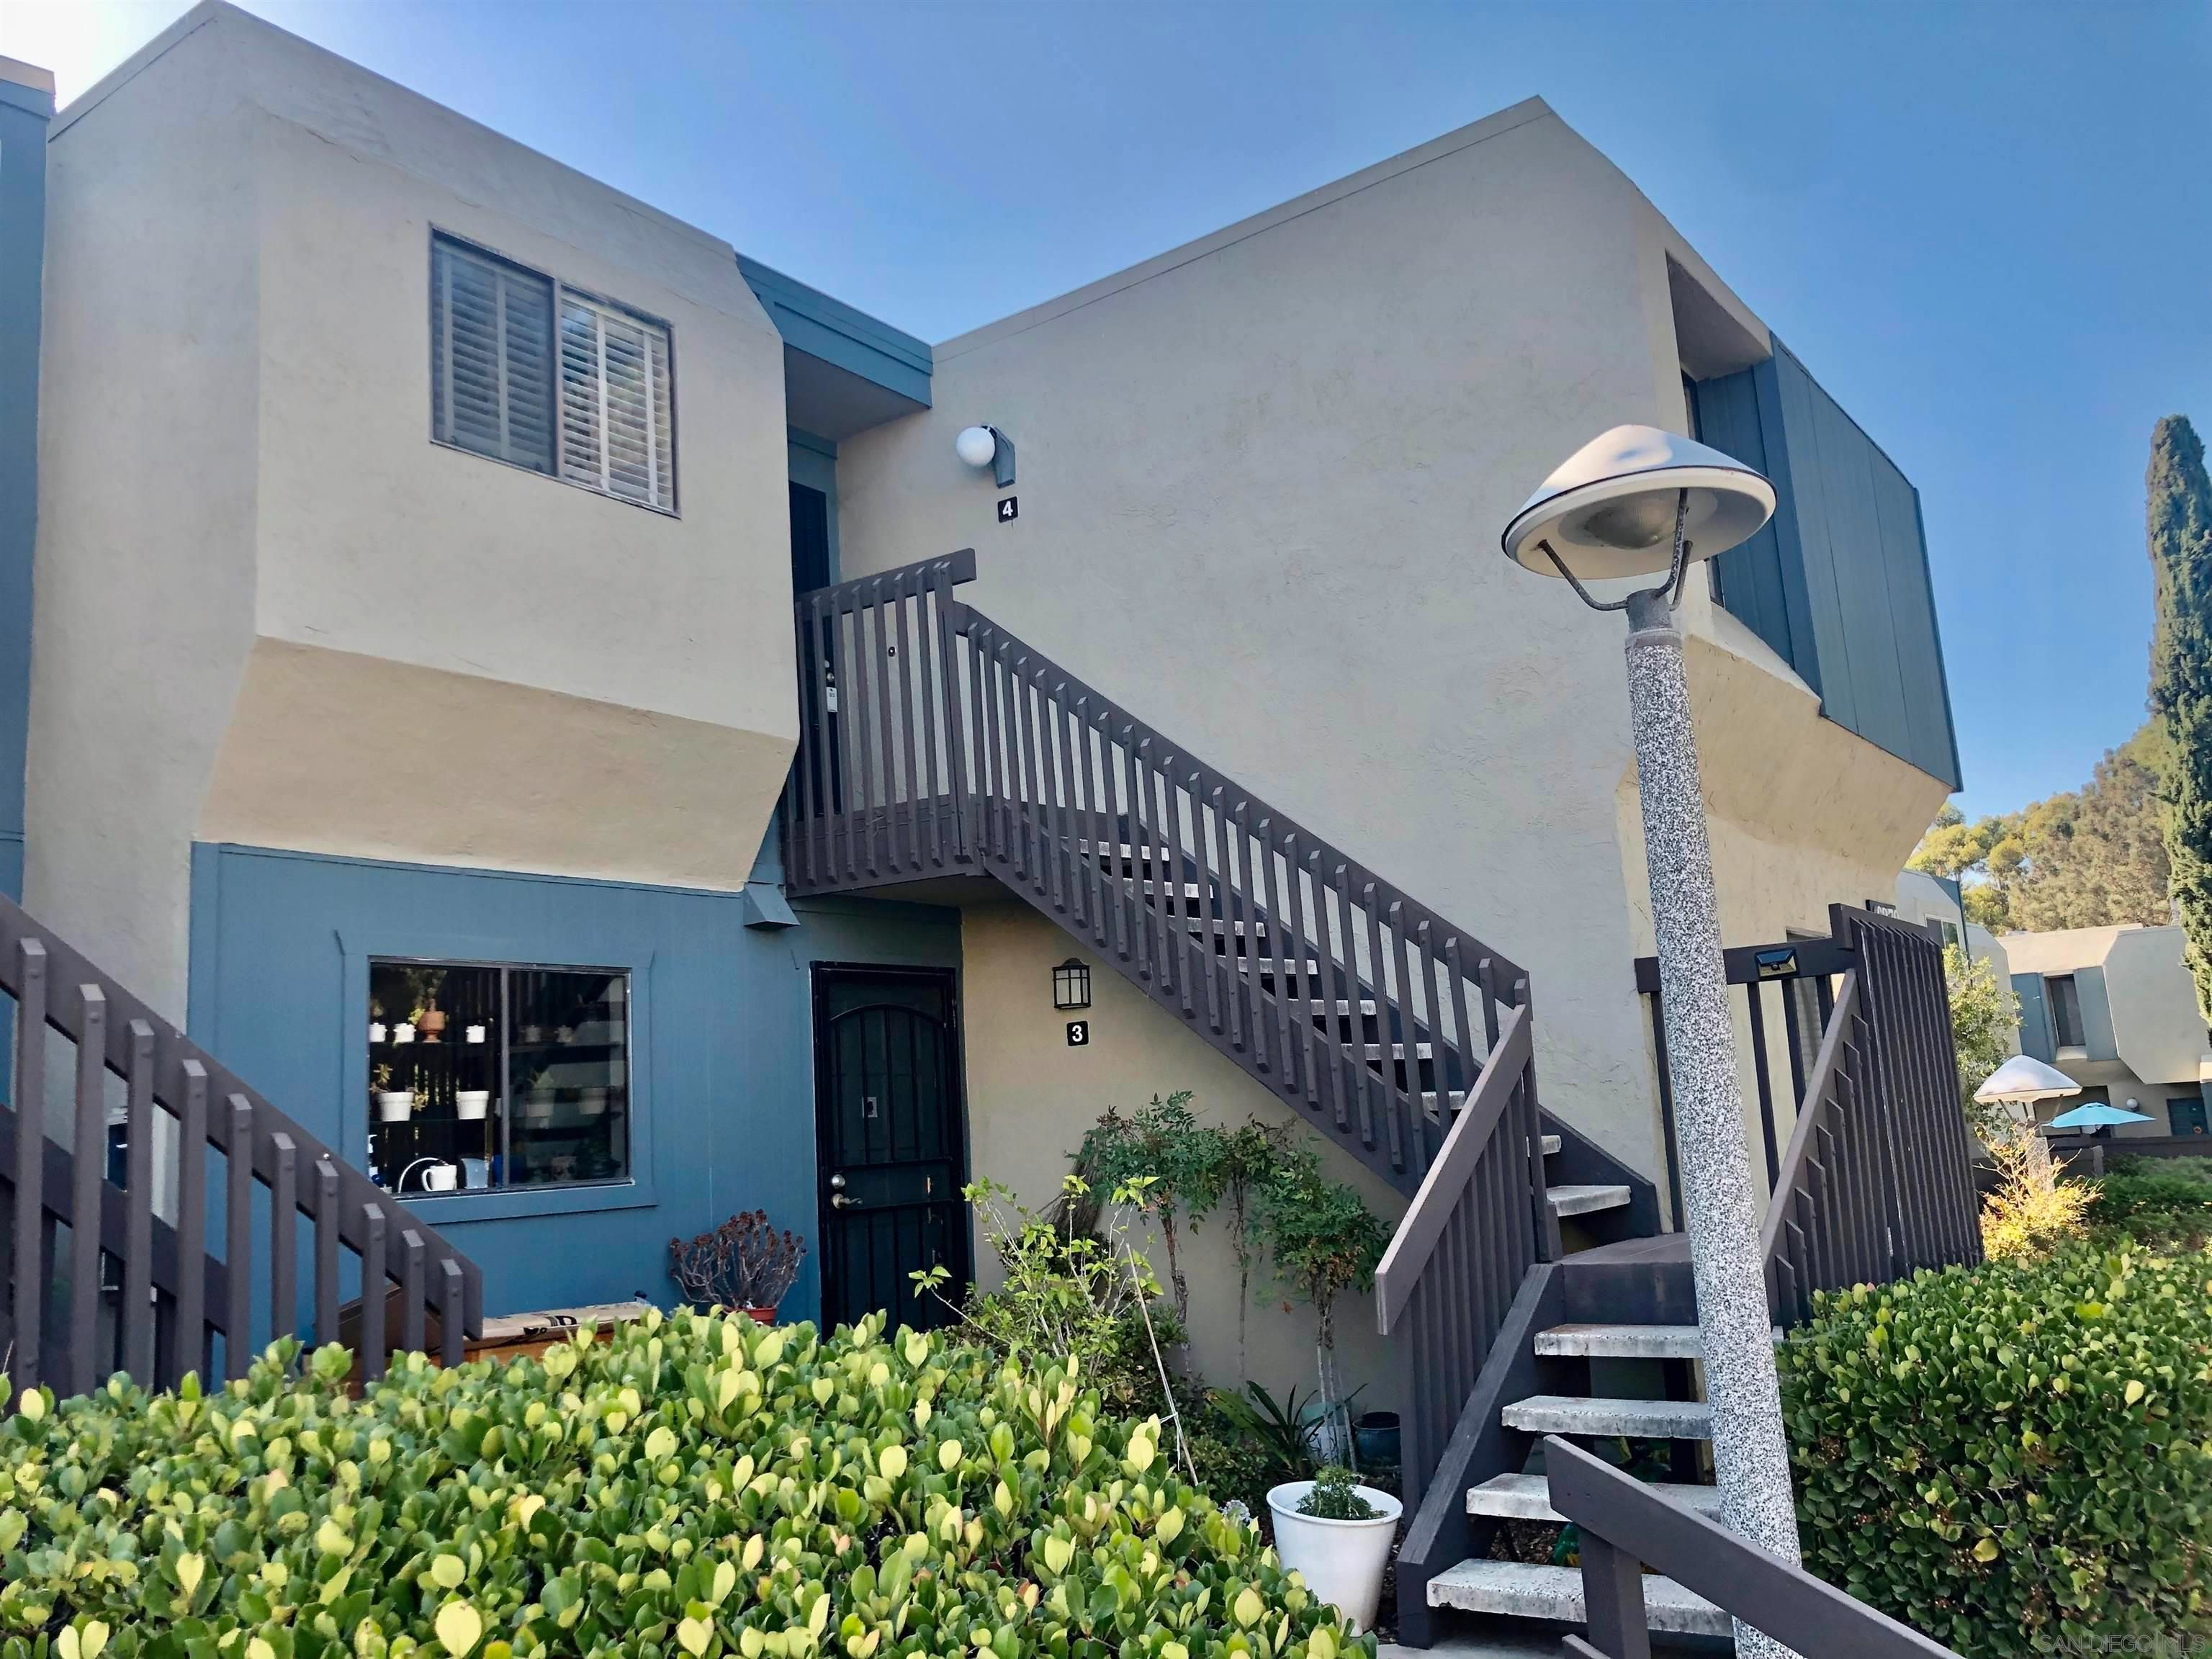 Main Photo: MISSION VALLEY Condo for sale : 2 bedrooms : 6379 Rancho Mission Rd #4 in San Diego